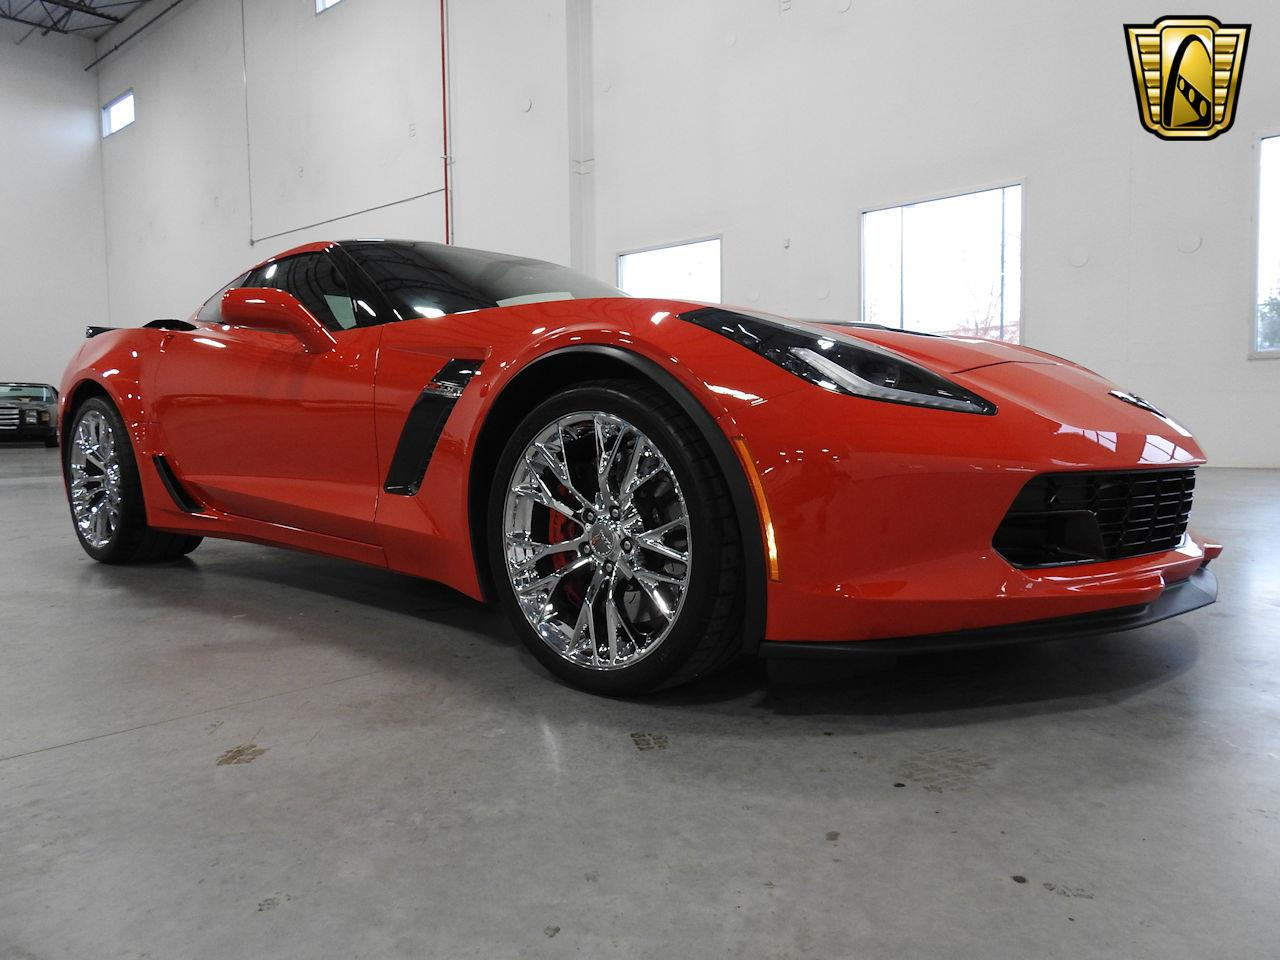 Large Picture of '15 Chevrolet Corvette located in Wisconsin - $69,000.00 - MAC7